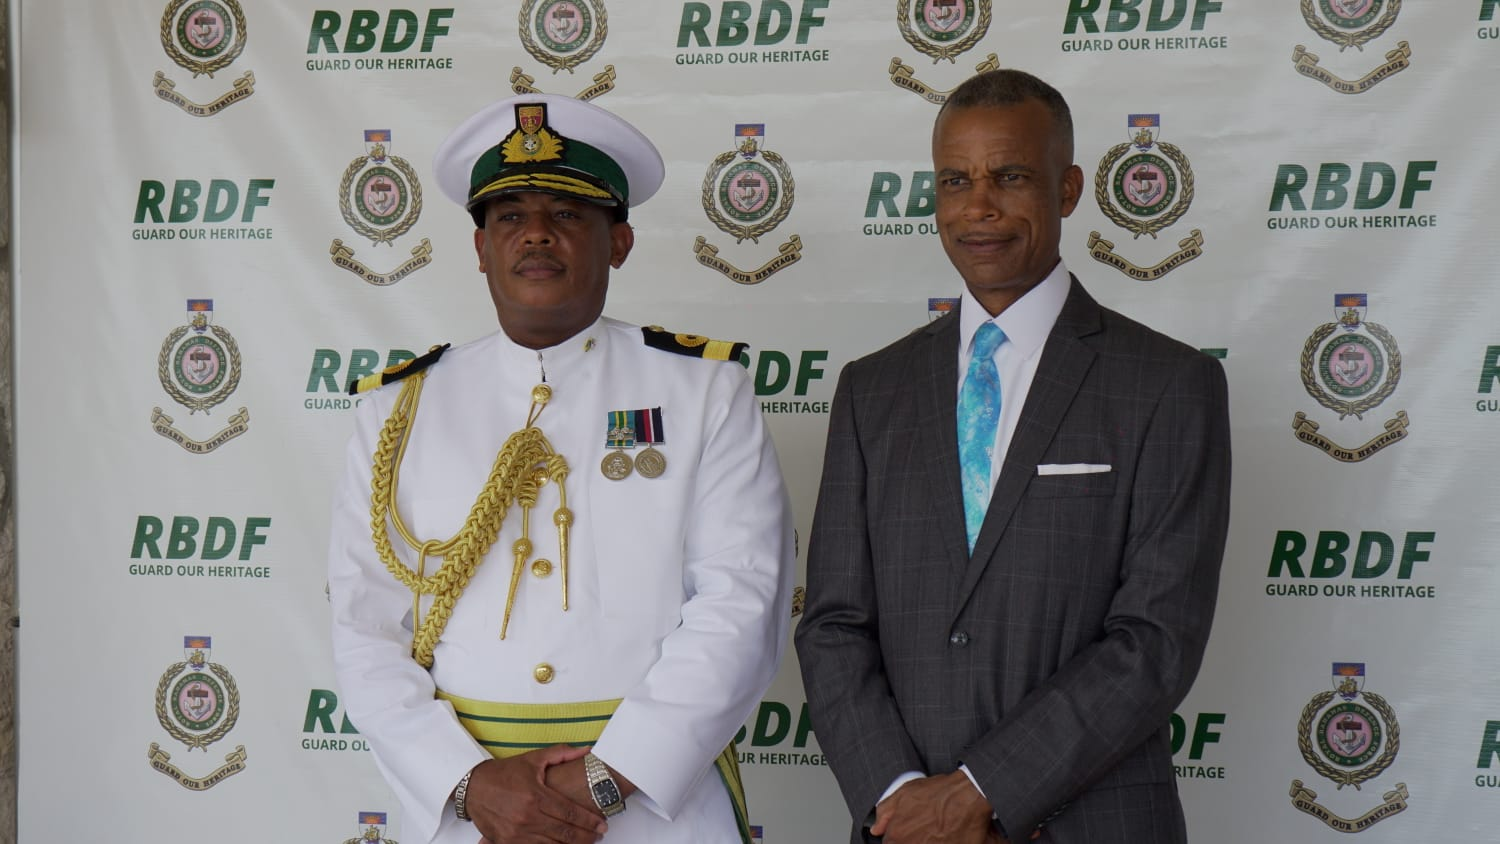 """PM: King's leadership of RBDF comes at """"critical time"""""""